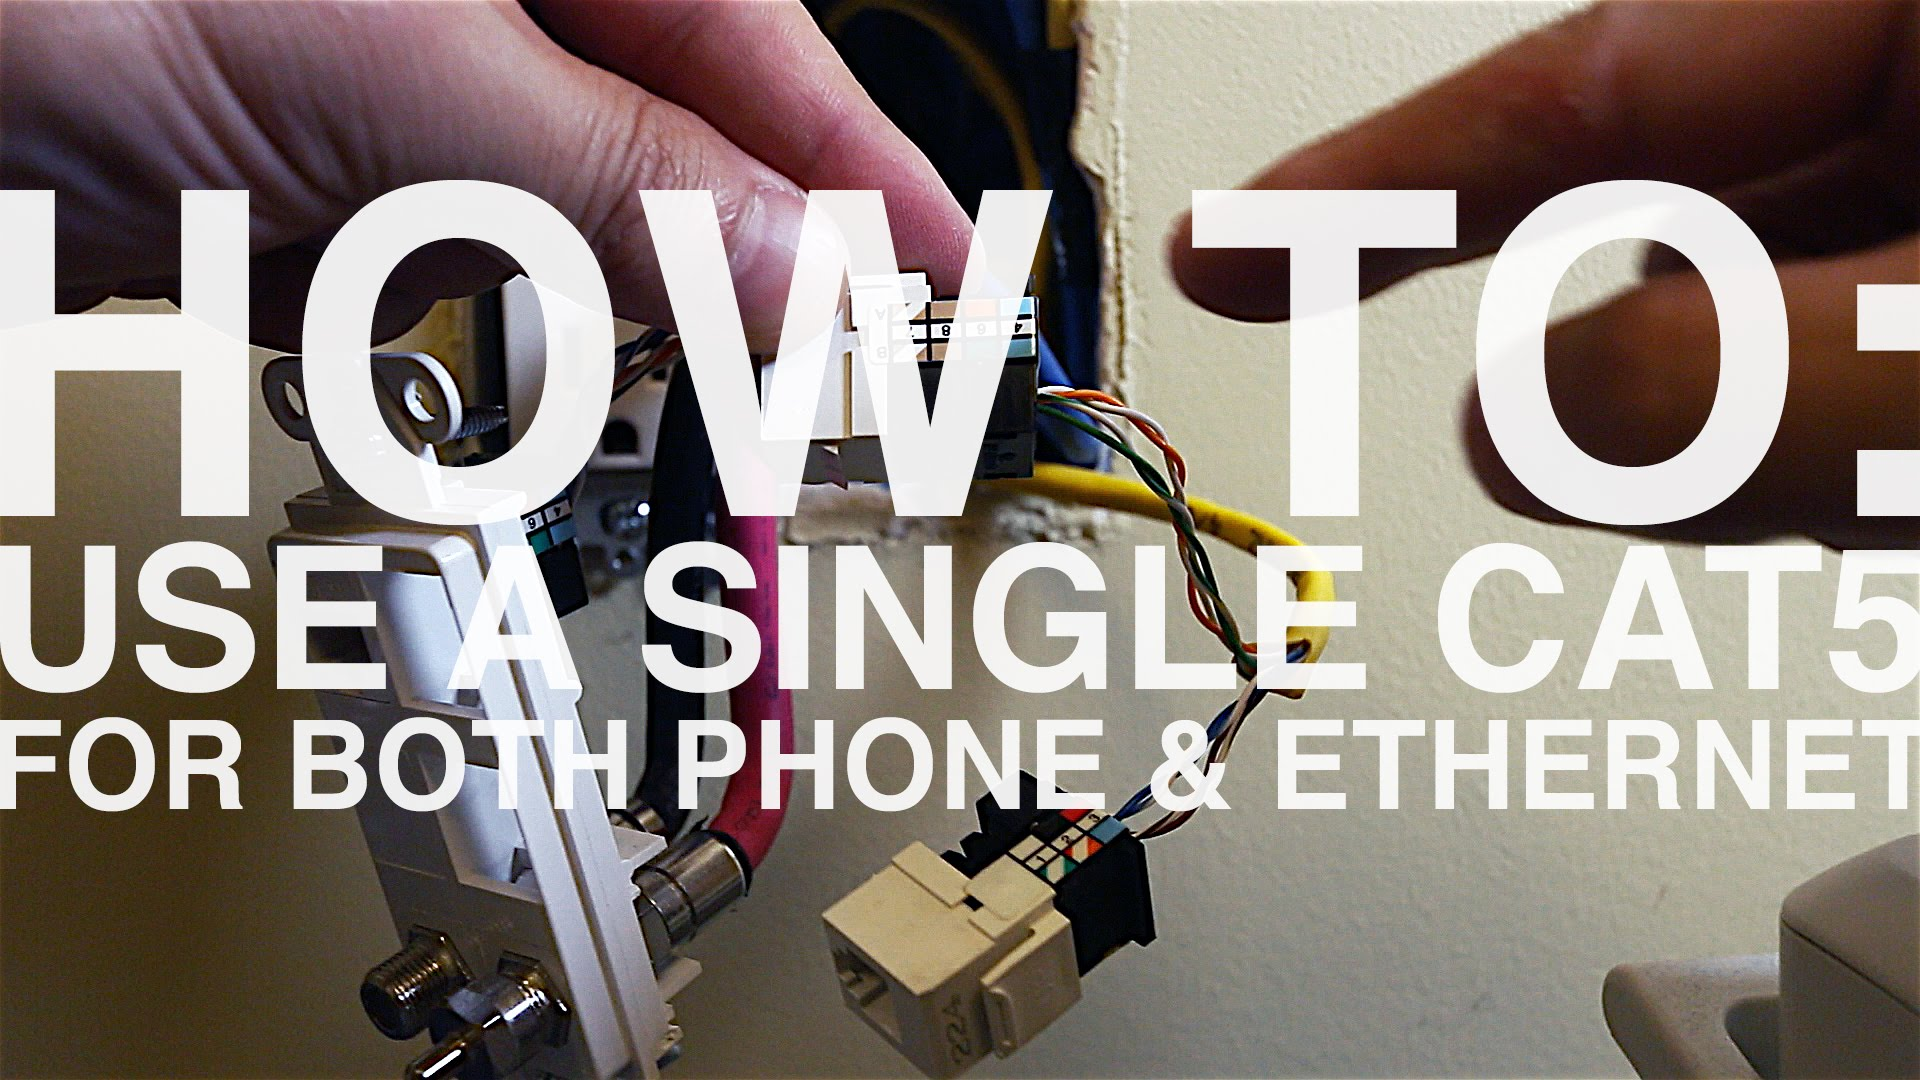 how to: wire an ethernet and phone jack using a single cat5e cable |  mavromatic